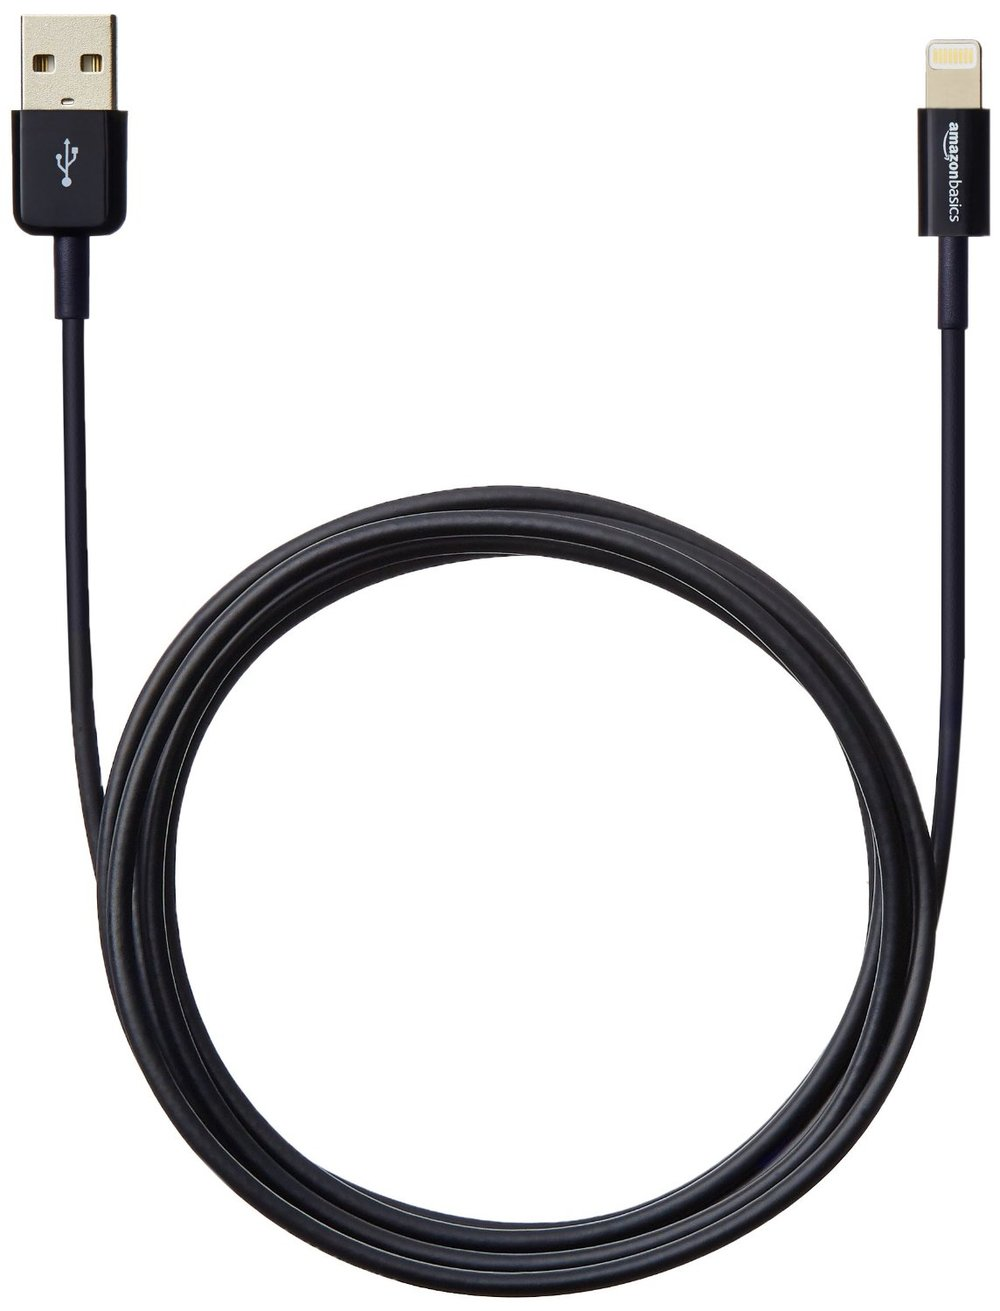 best_lighthing_cable_2016_amazonbasics.jpg